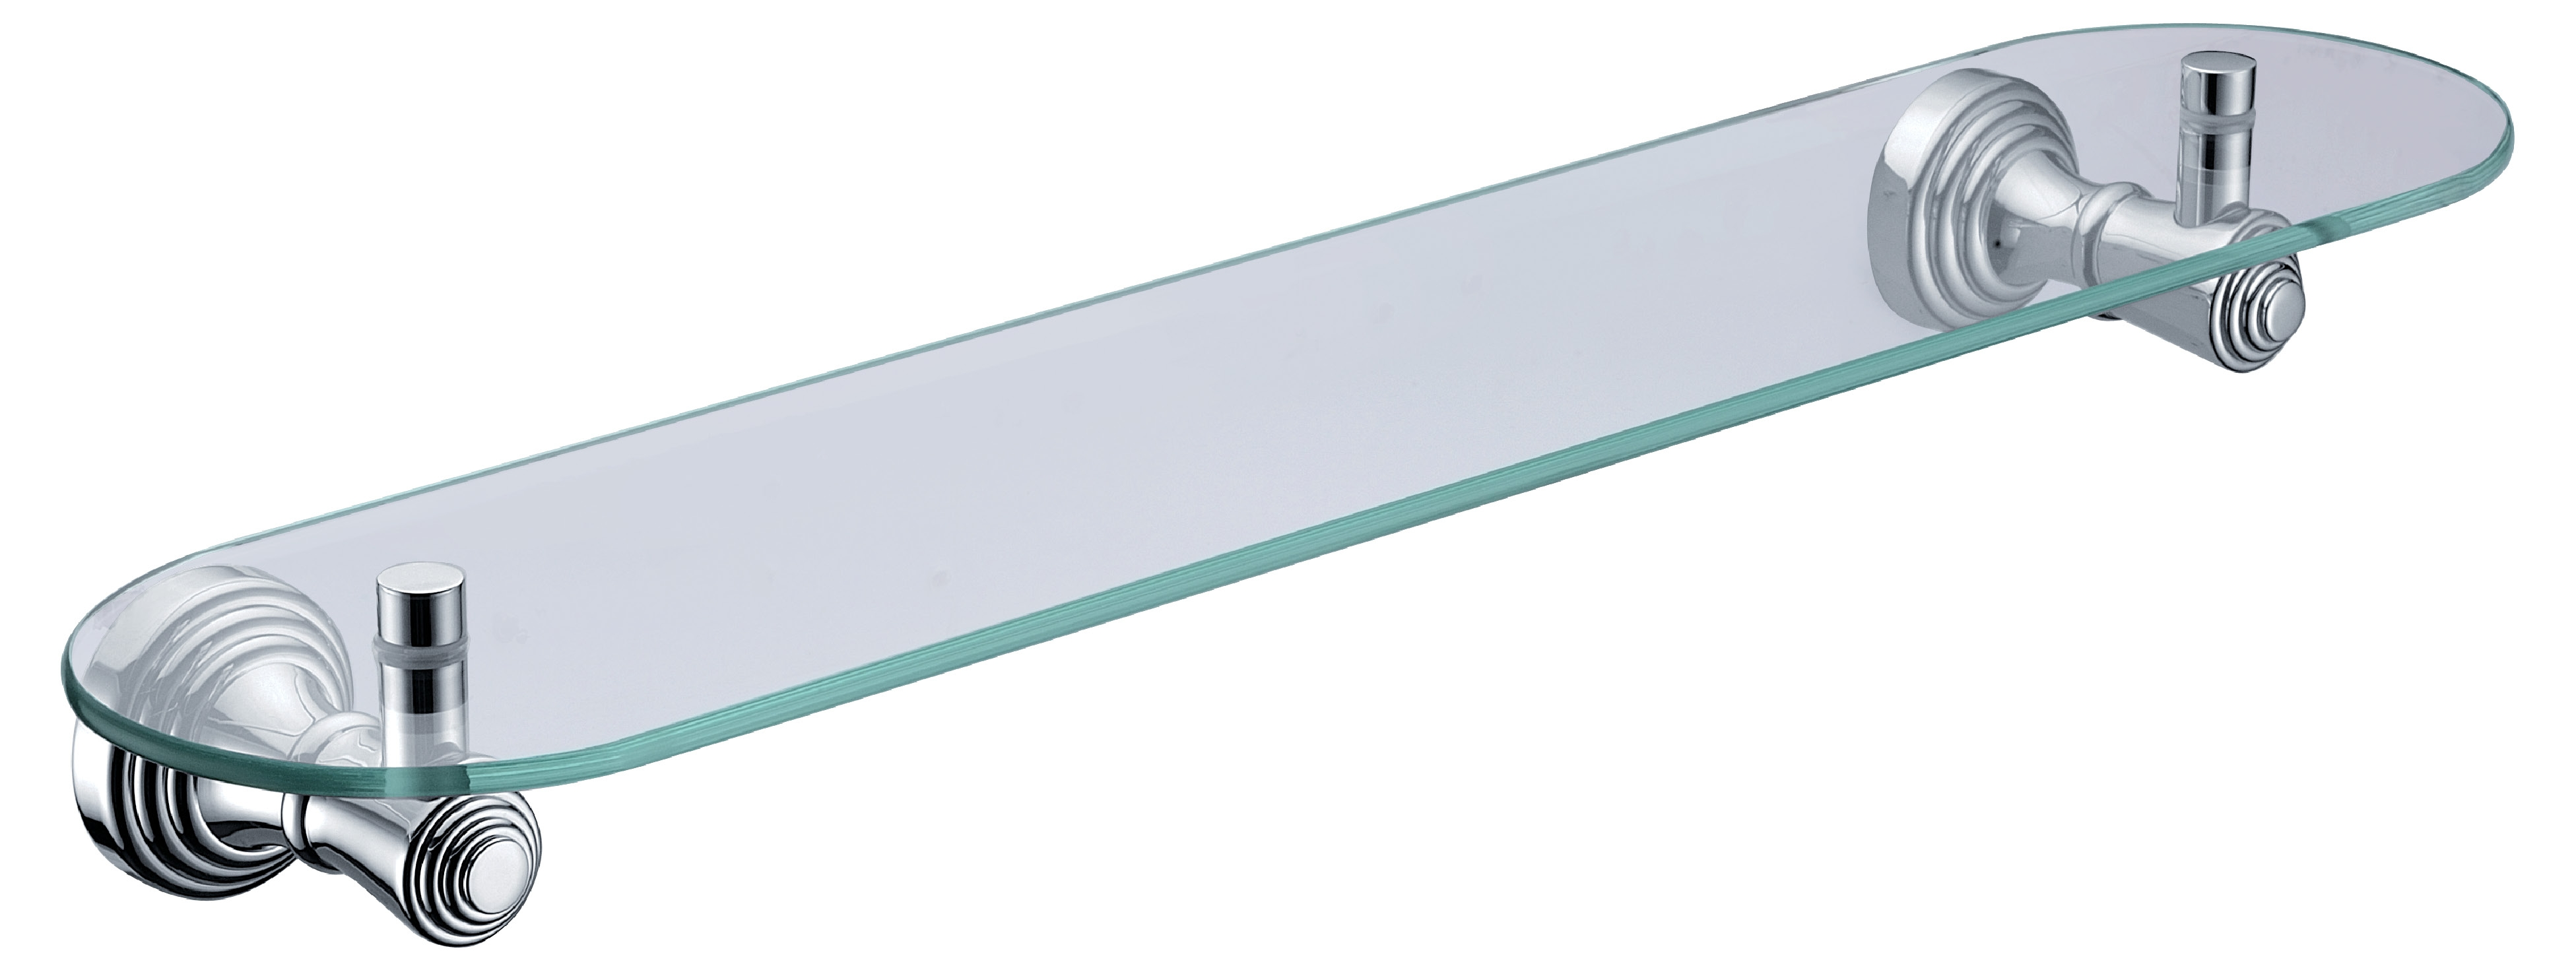 Wall Mounted Glass Shelf In Bathroom Accessoriesglass Shelf Within Glass Shelf Brackets Floating On Air (Image 14 of 15)